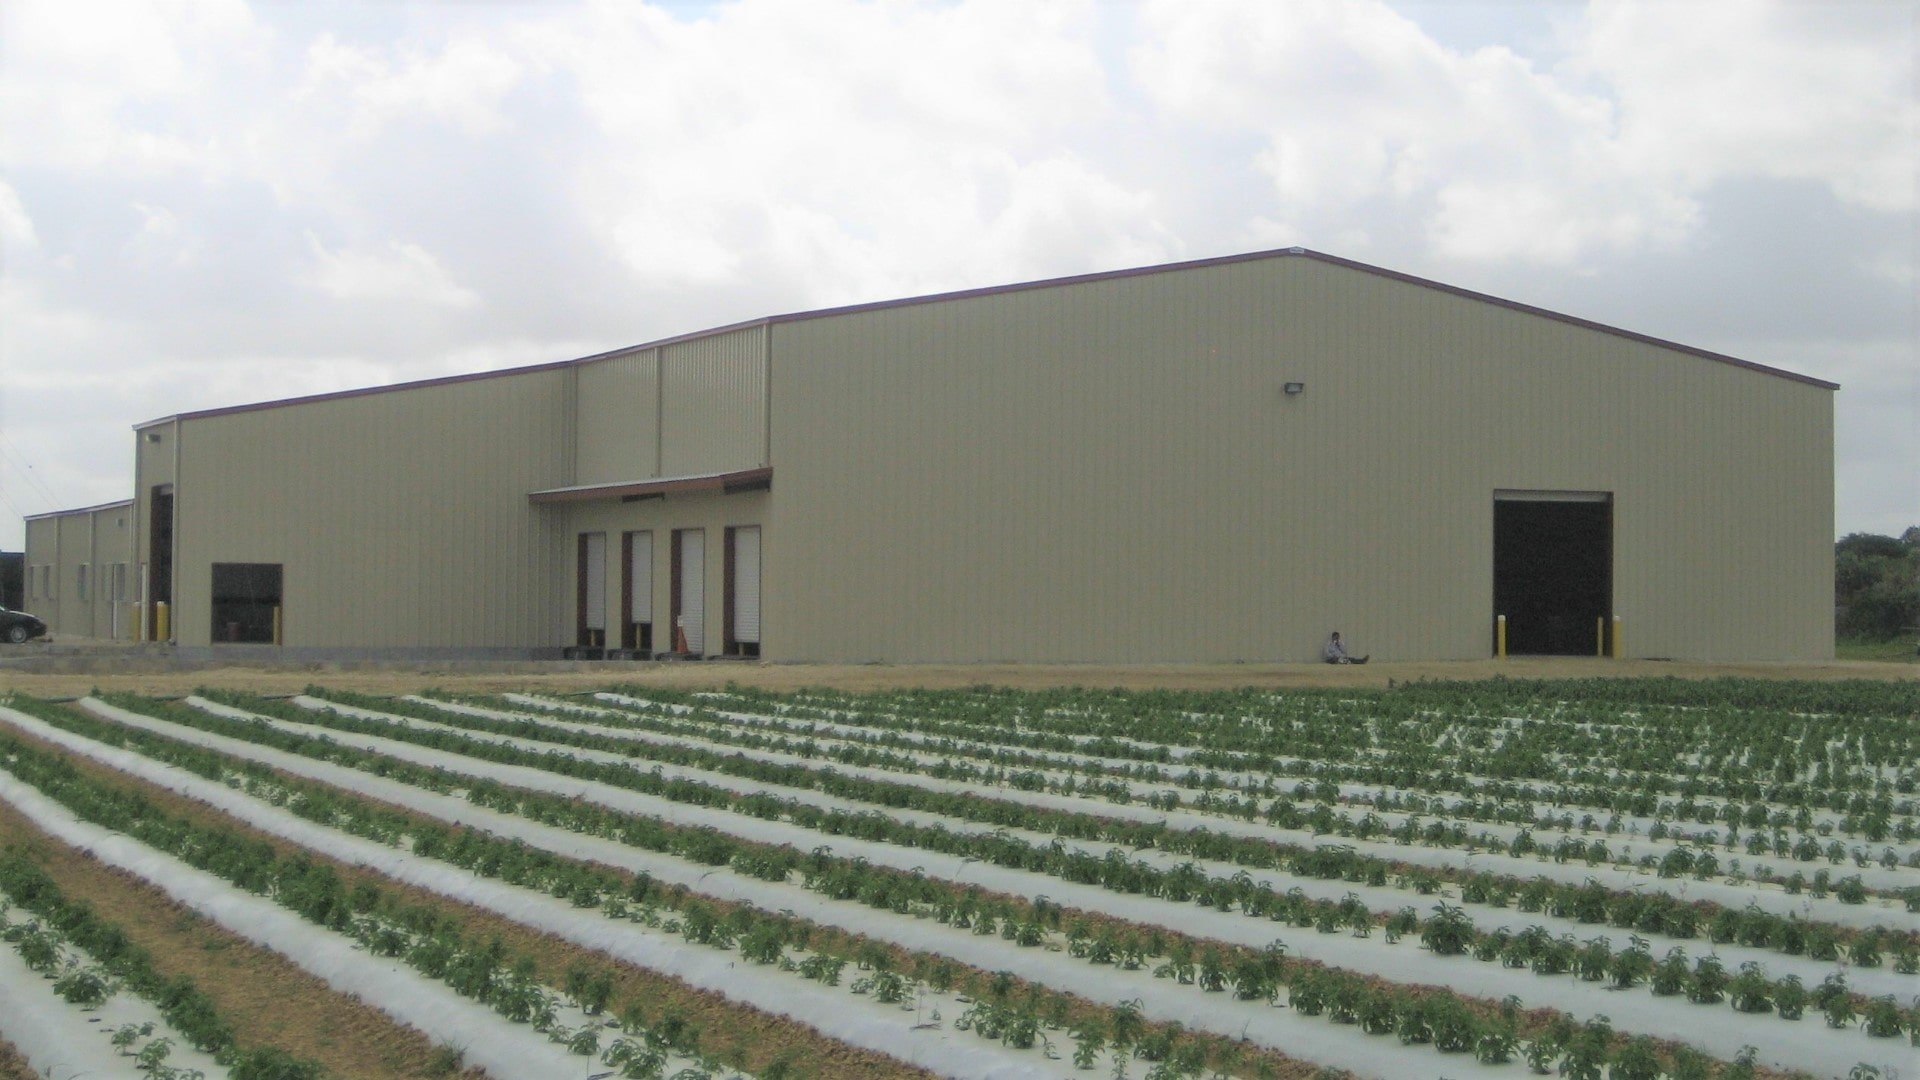 Commercial plant grower packing house tan steel building with loading dock view from right endwall.